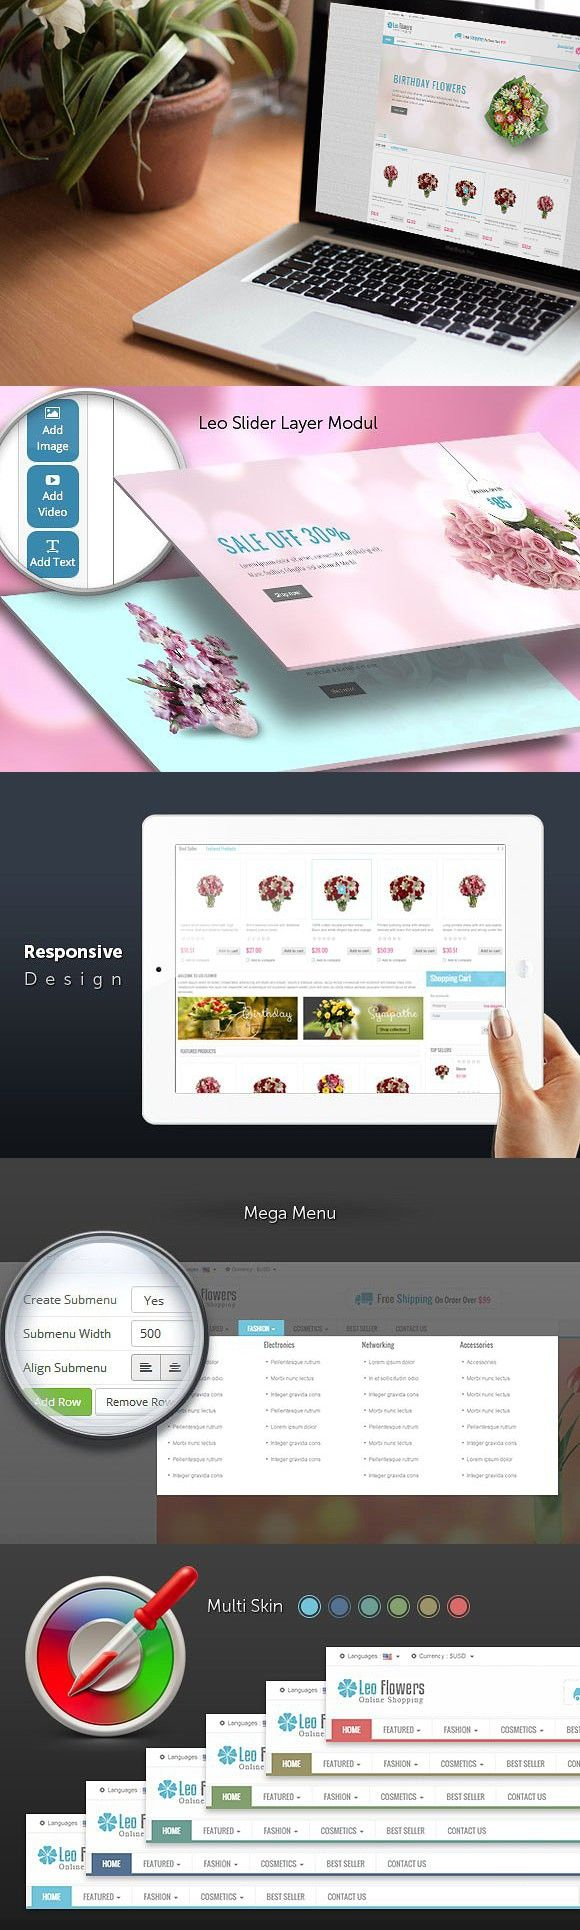 996 best Bootstrap Themes images on Pinterest   Templates, Website ...